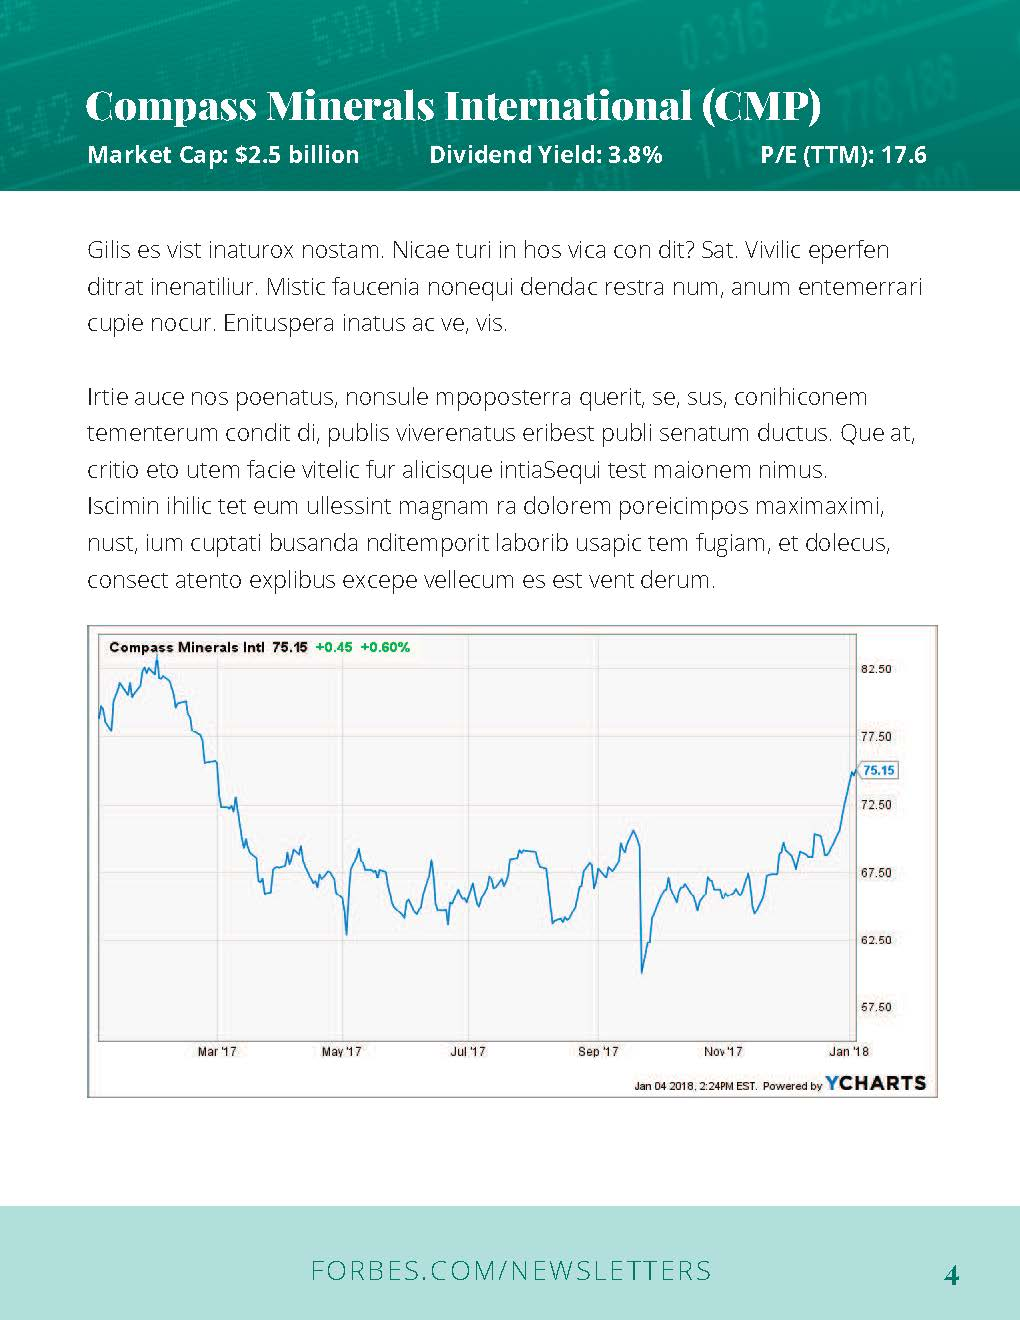 forbes-investing-report-template-TEAL_Page_4.jpg